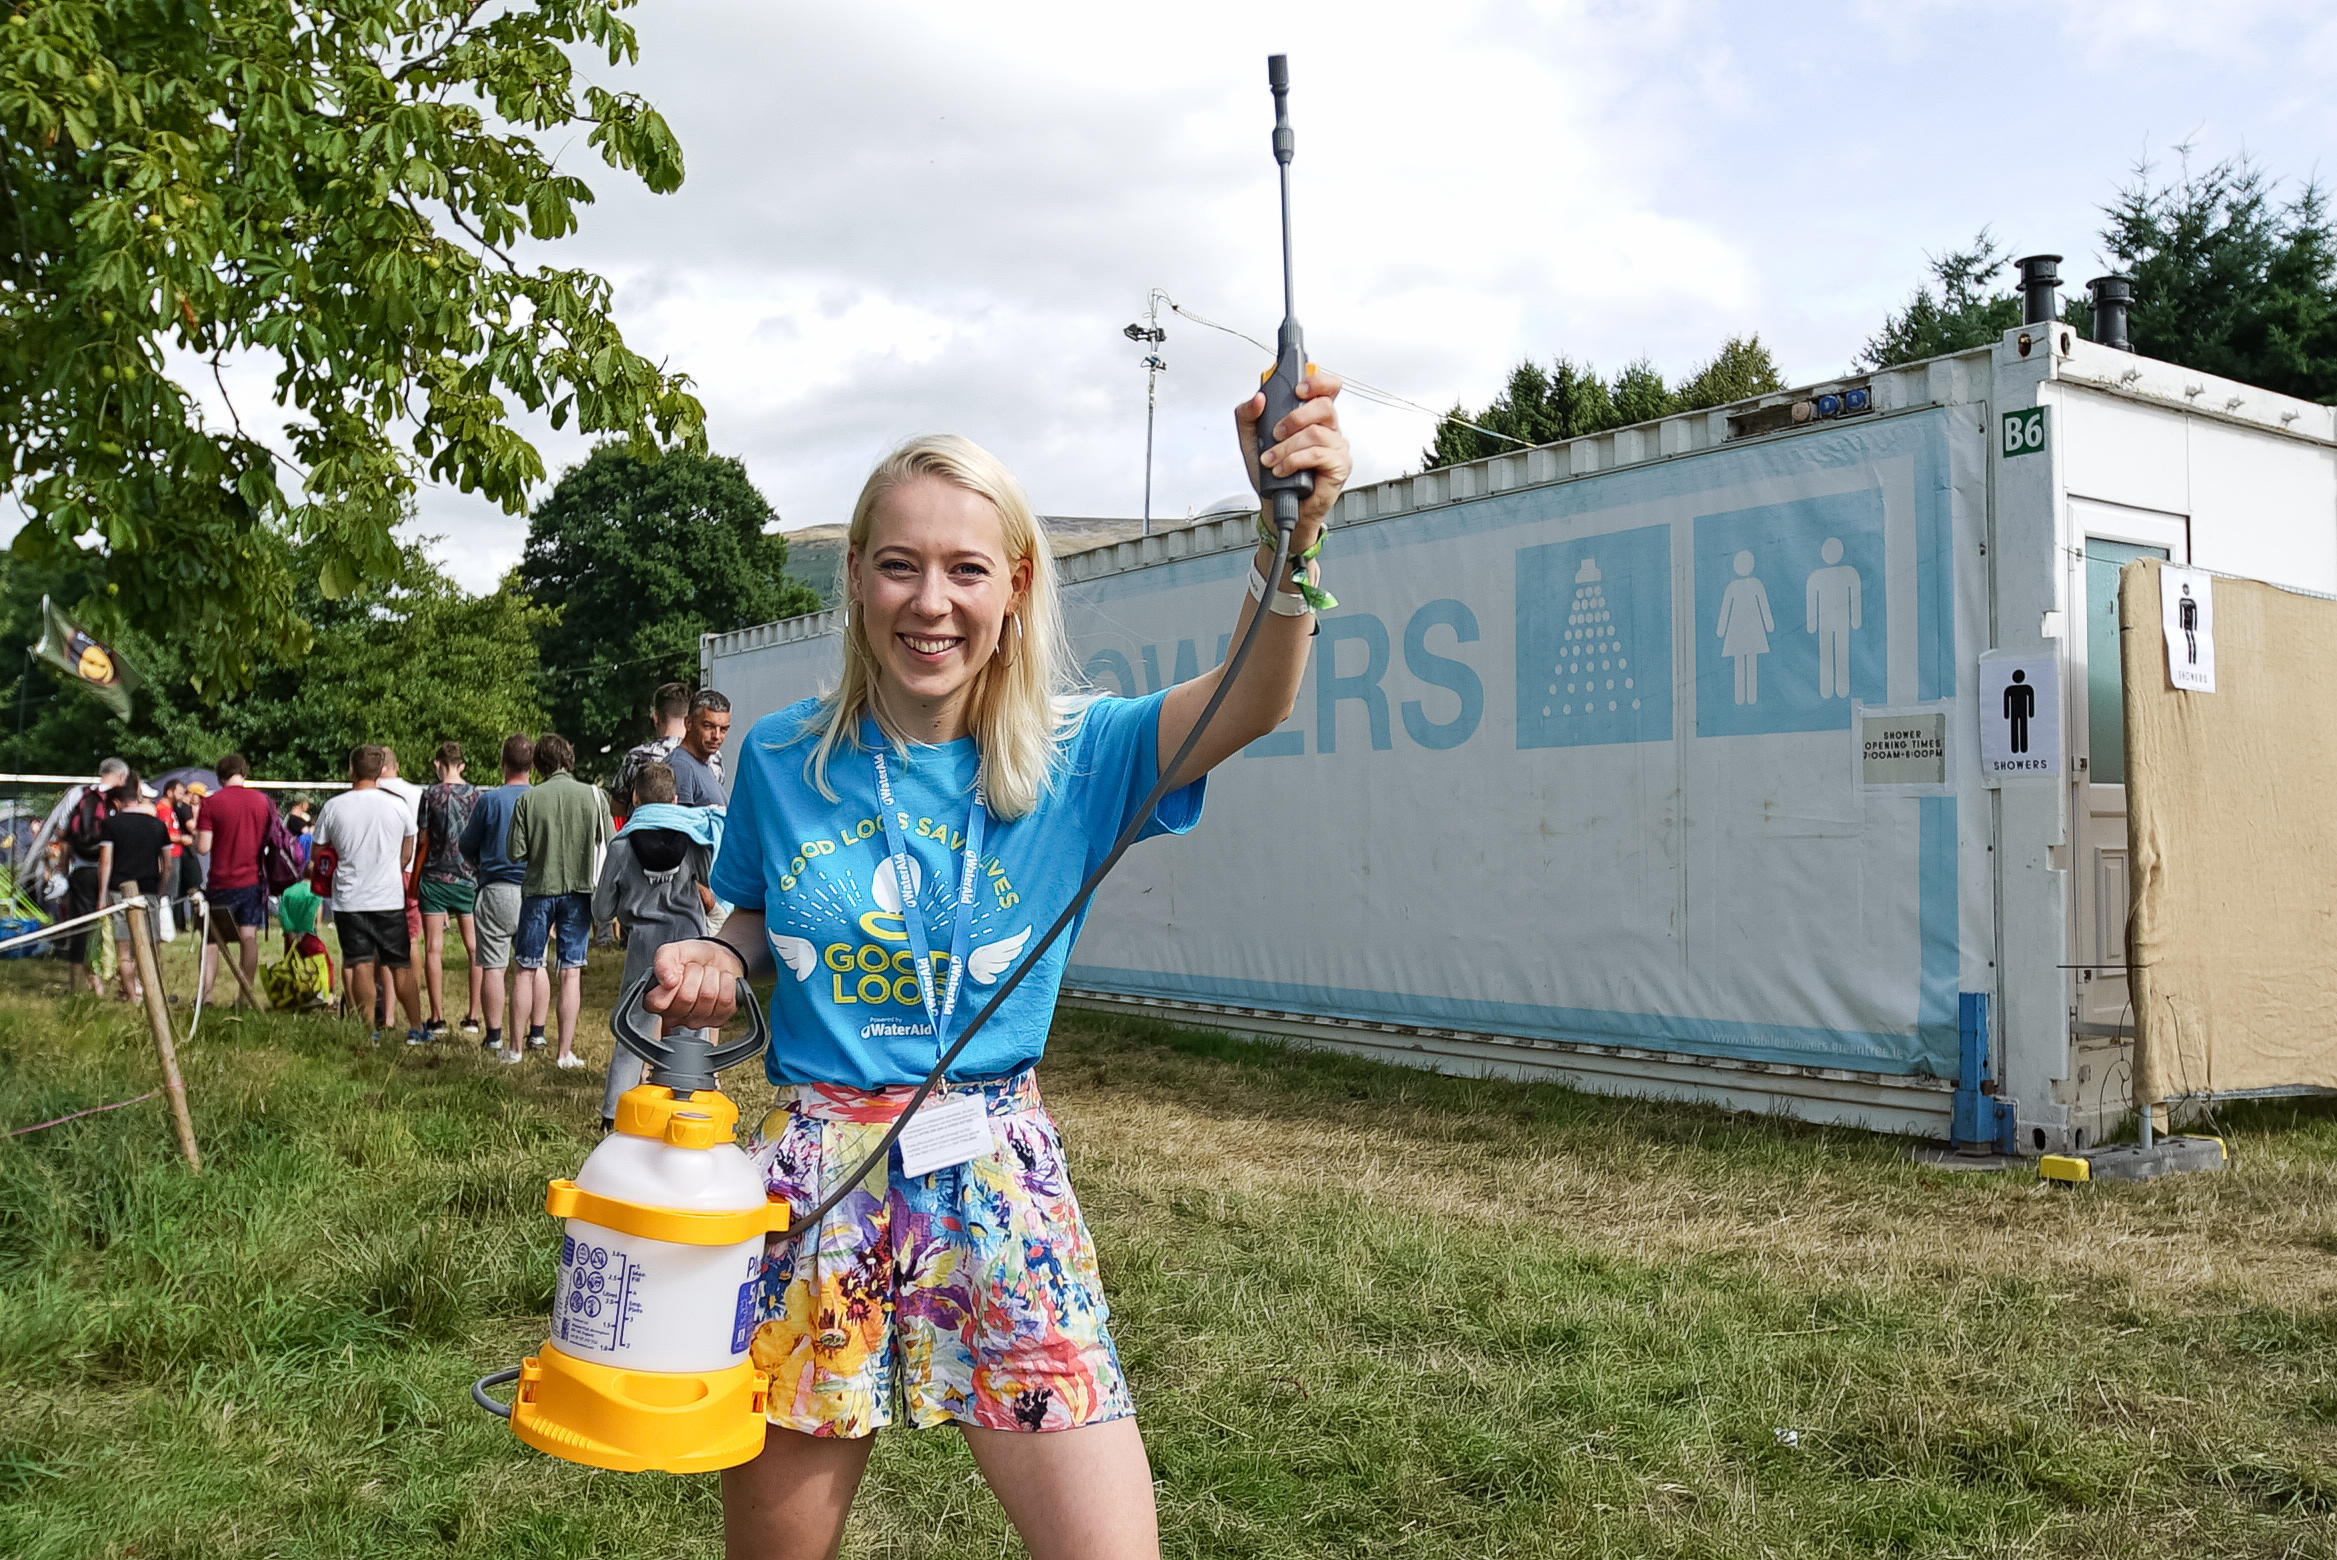 A WaterAid volunteer cleans the eco showers at green Man festival